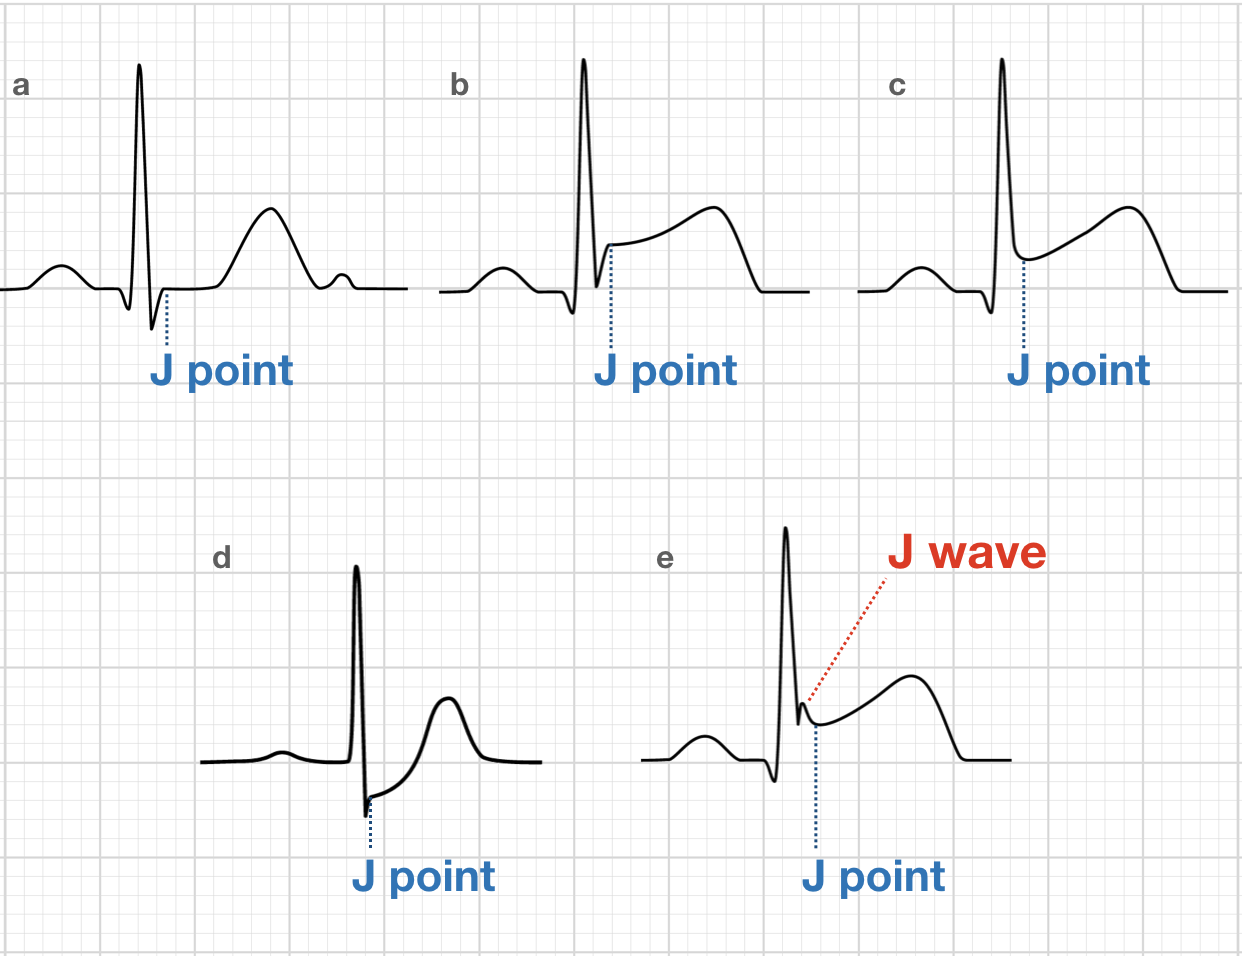 ECG J point J wave J point elevation